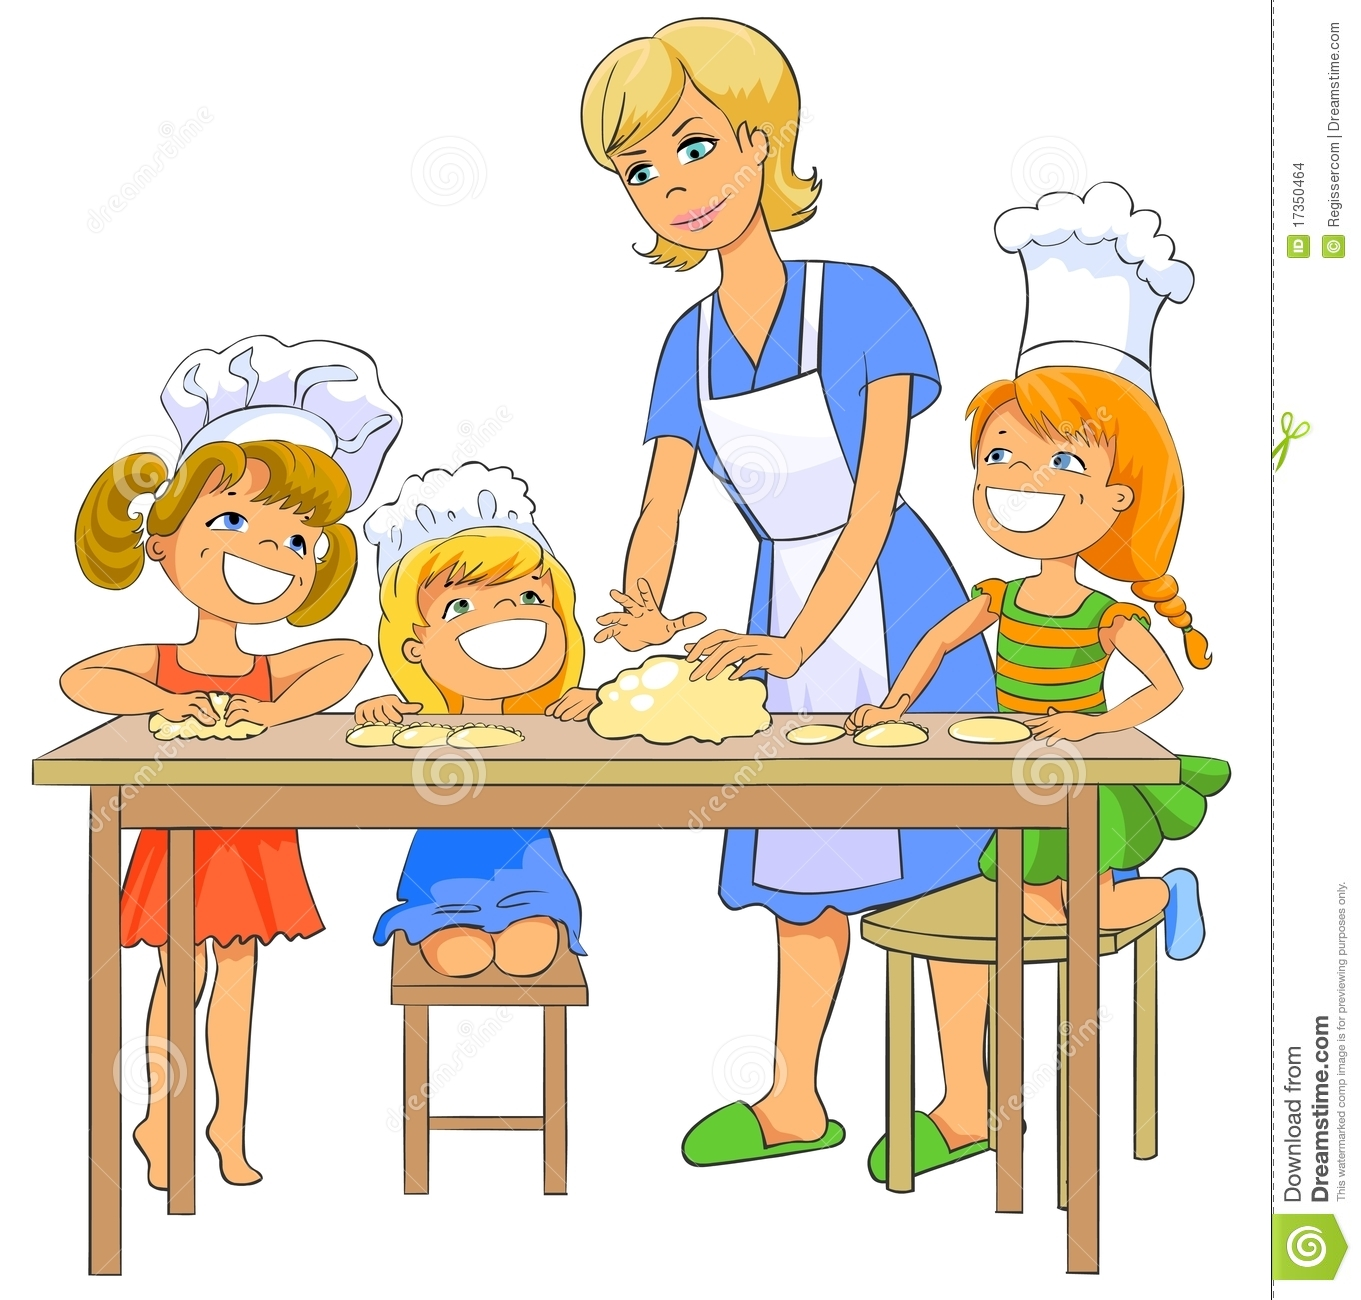 Clipart mom with kids jpg black and white Mom Cooking Clipart - Clipart Kid jpg black and white